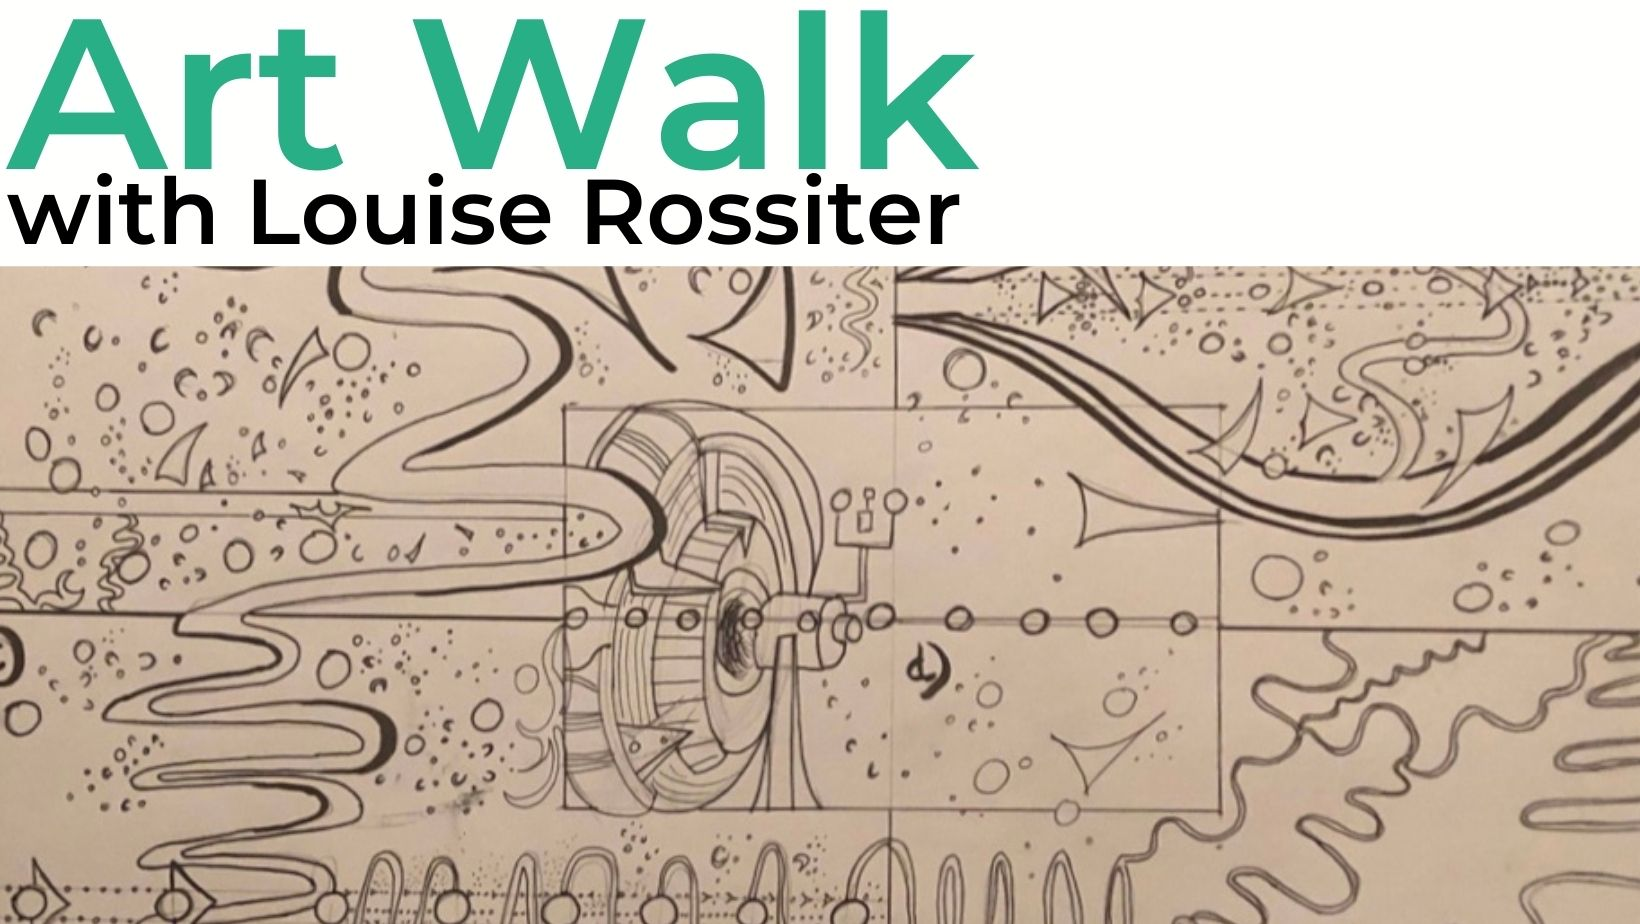 This is an image of a visual score created by Louise Rossiter. It looks hand drawn with pencil and features lots of shapes and drawings.